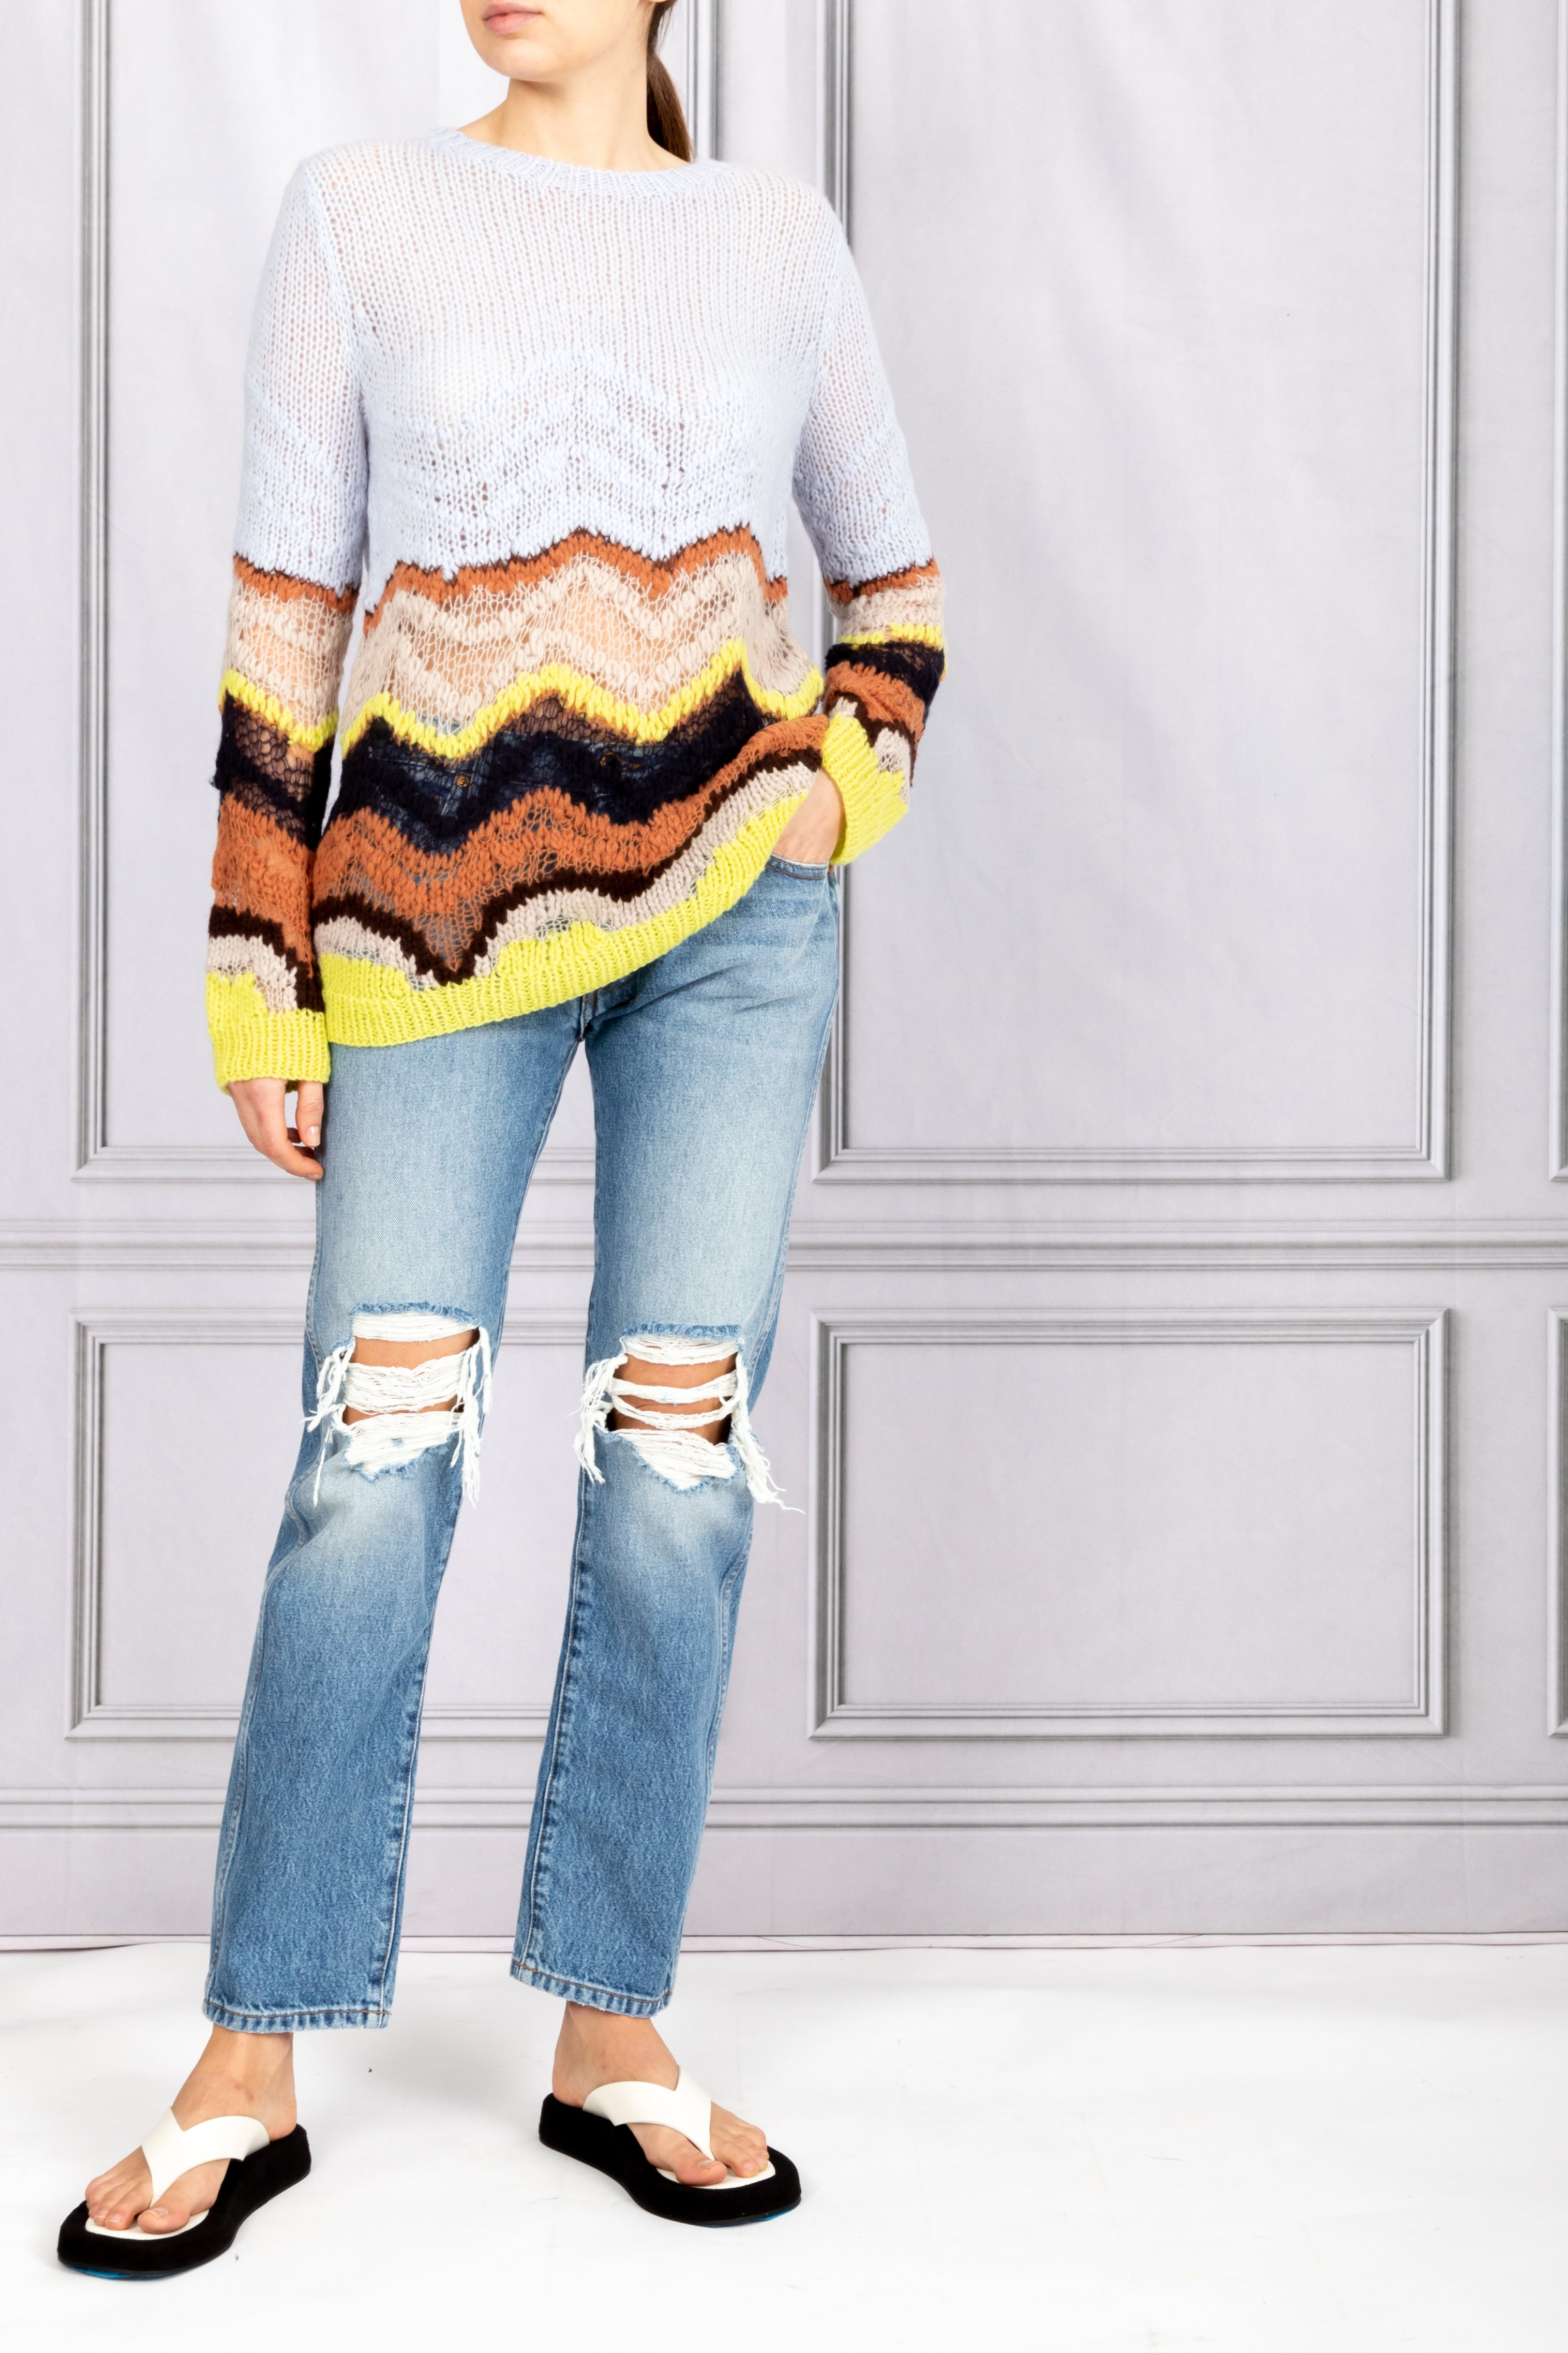 Felipe Hand Knit Sweater - Halogen Blue Multi